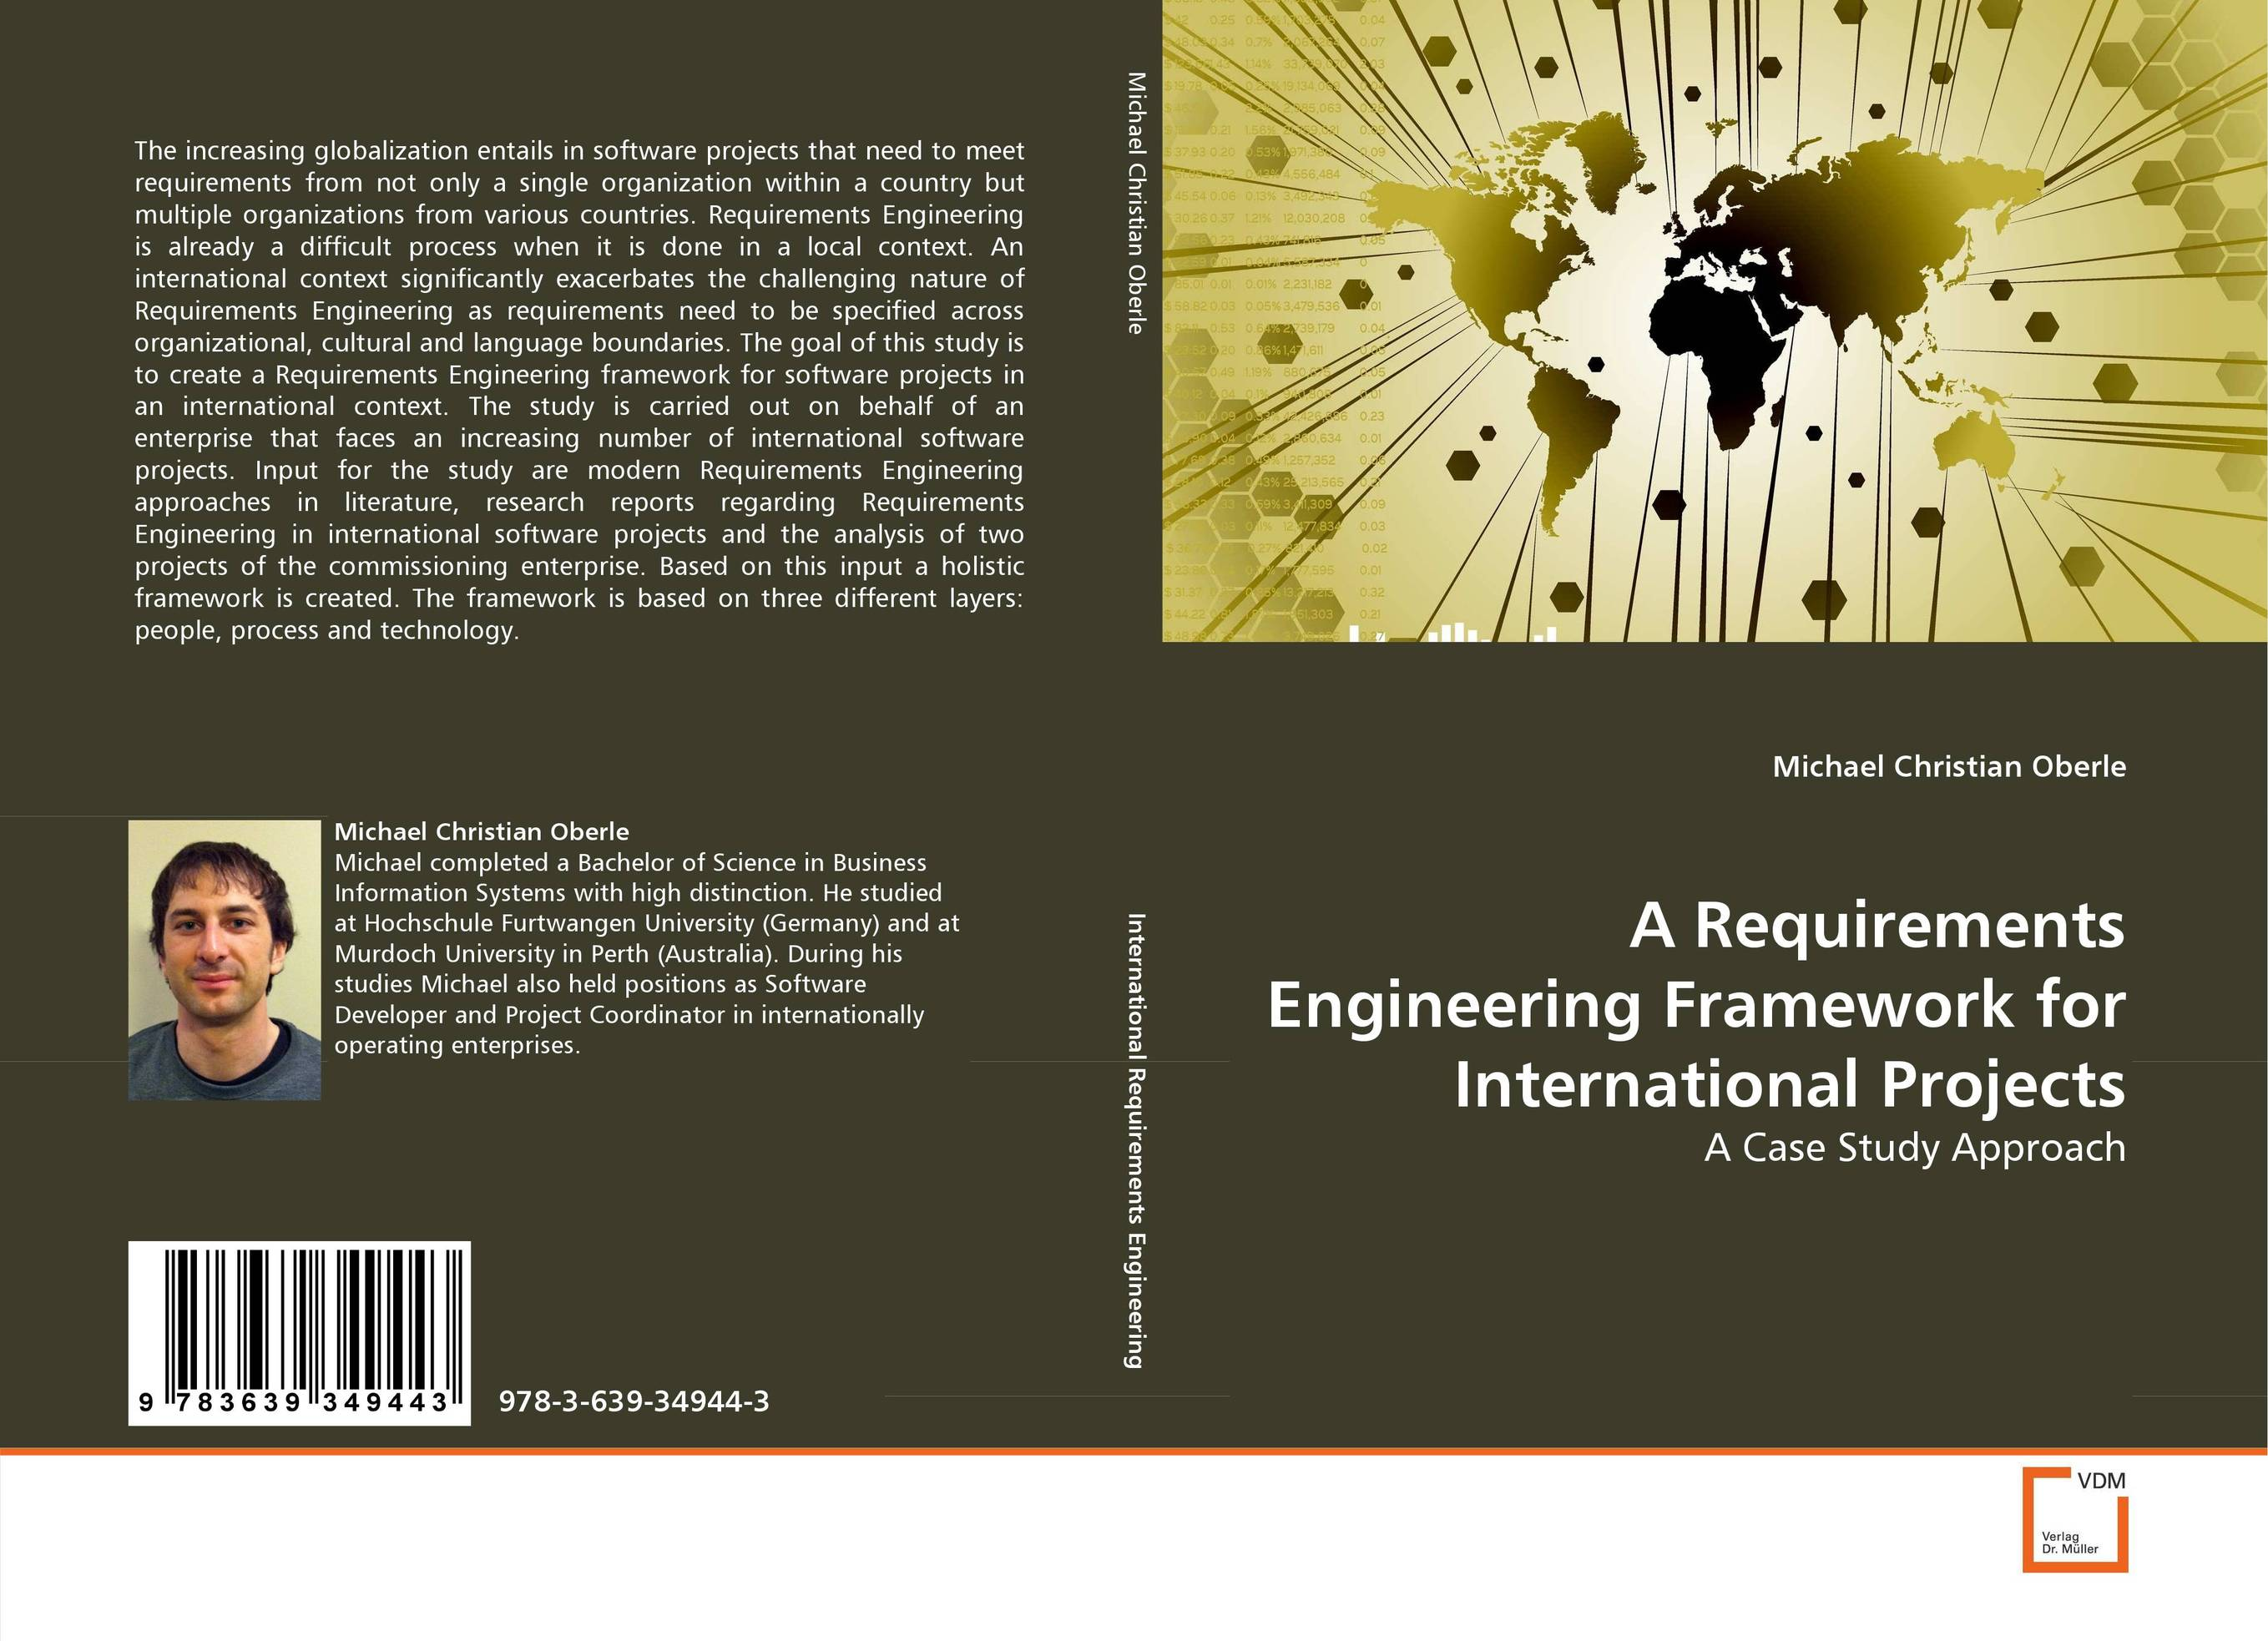 A Requirements Engineering Framework for International Projects hlako choma and mahodiela ramafalo dismissal based on operational requirements in the workplace